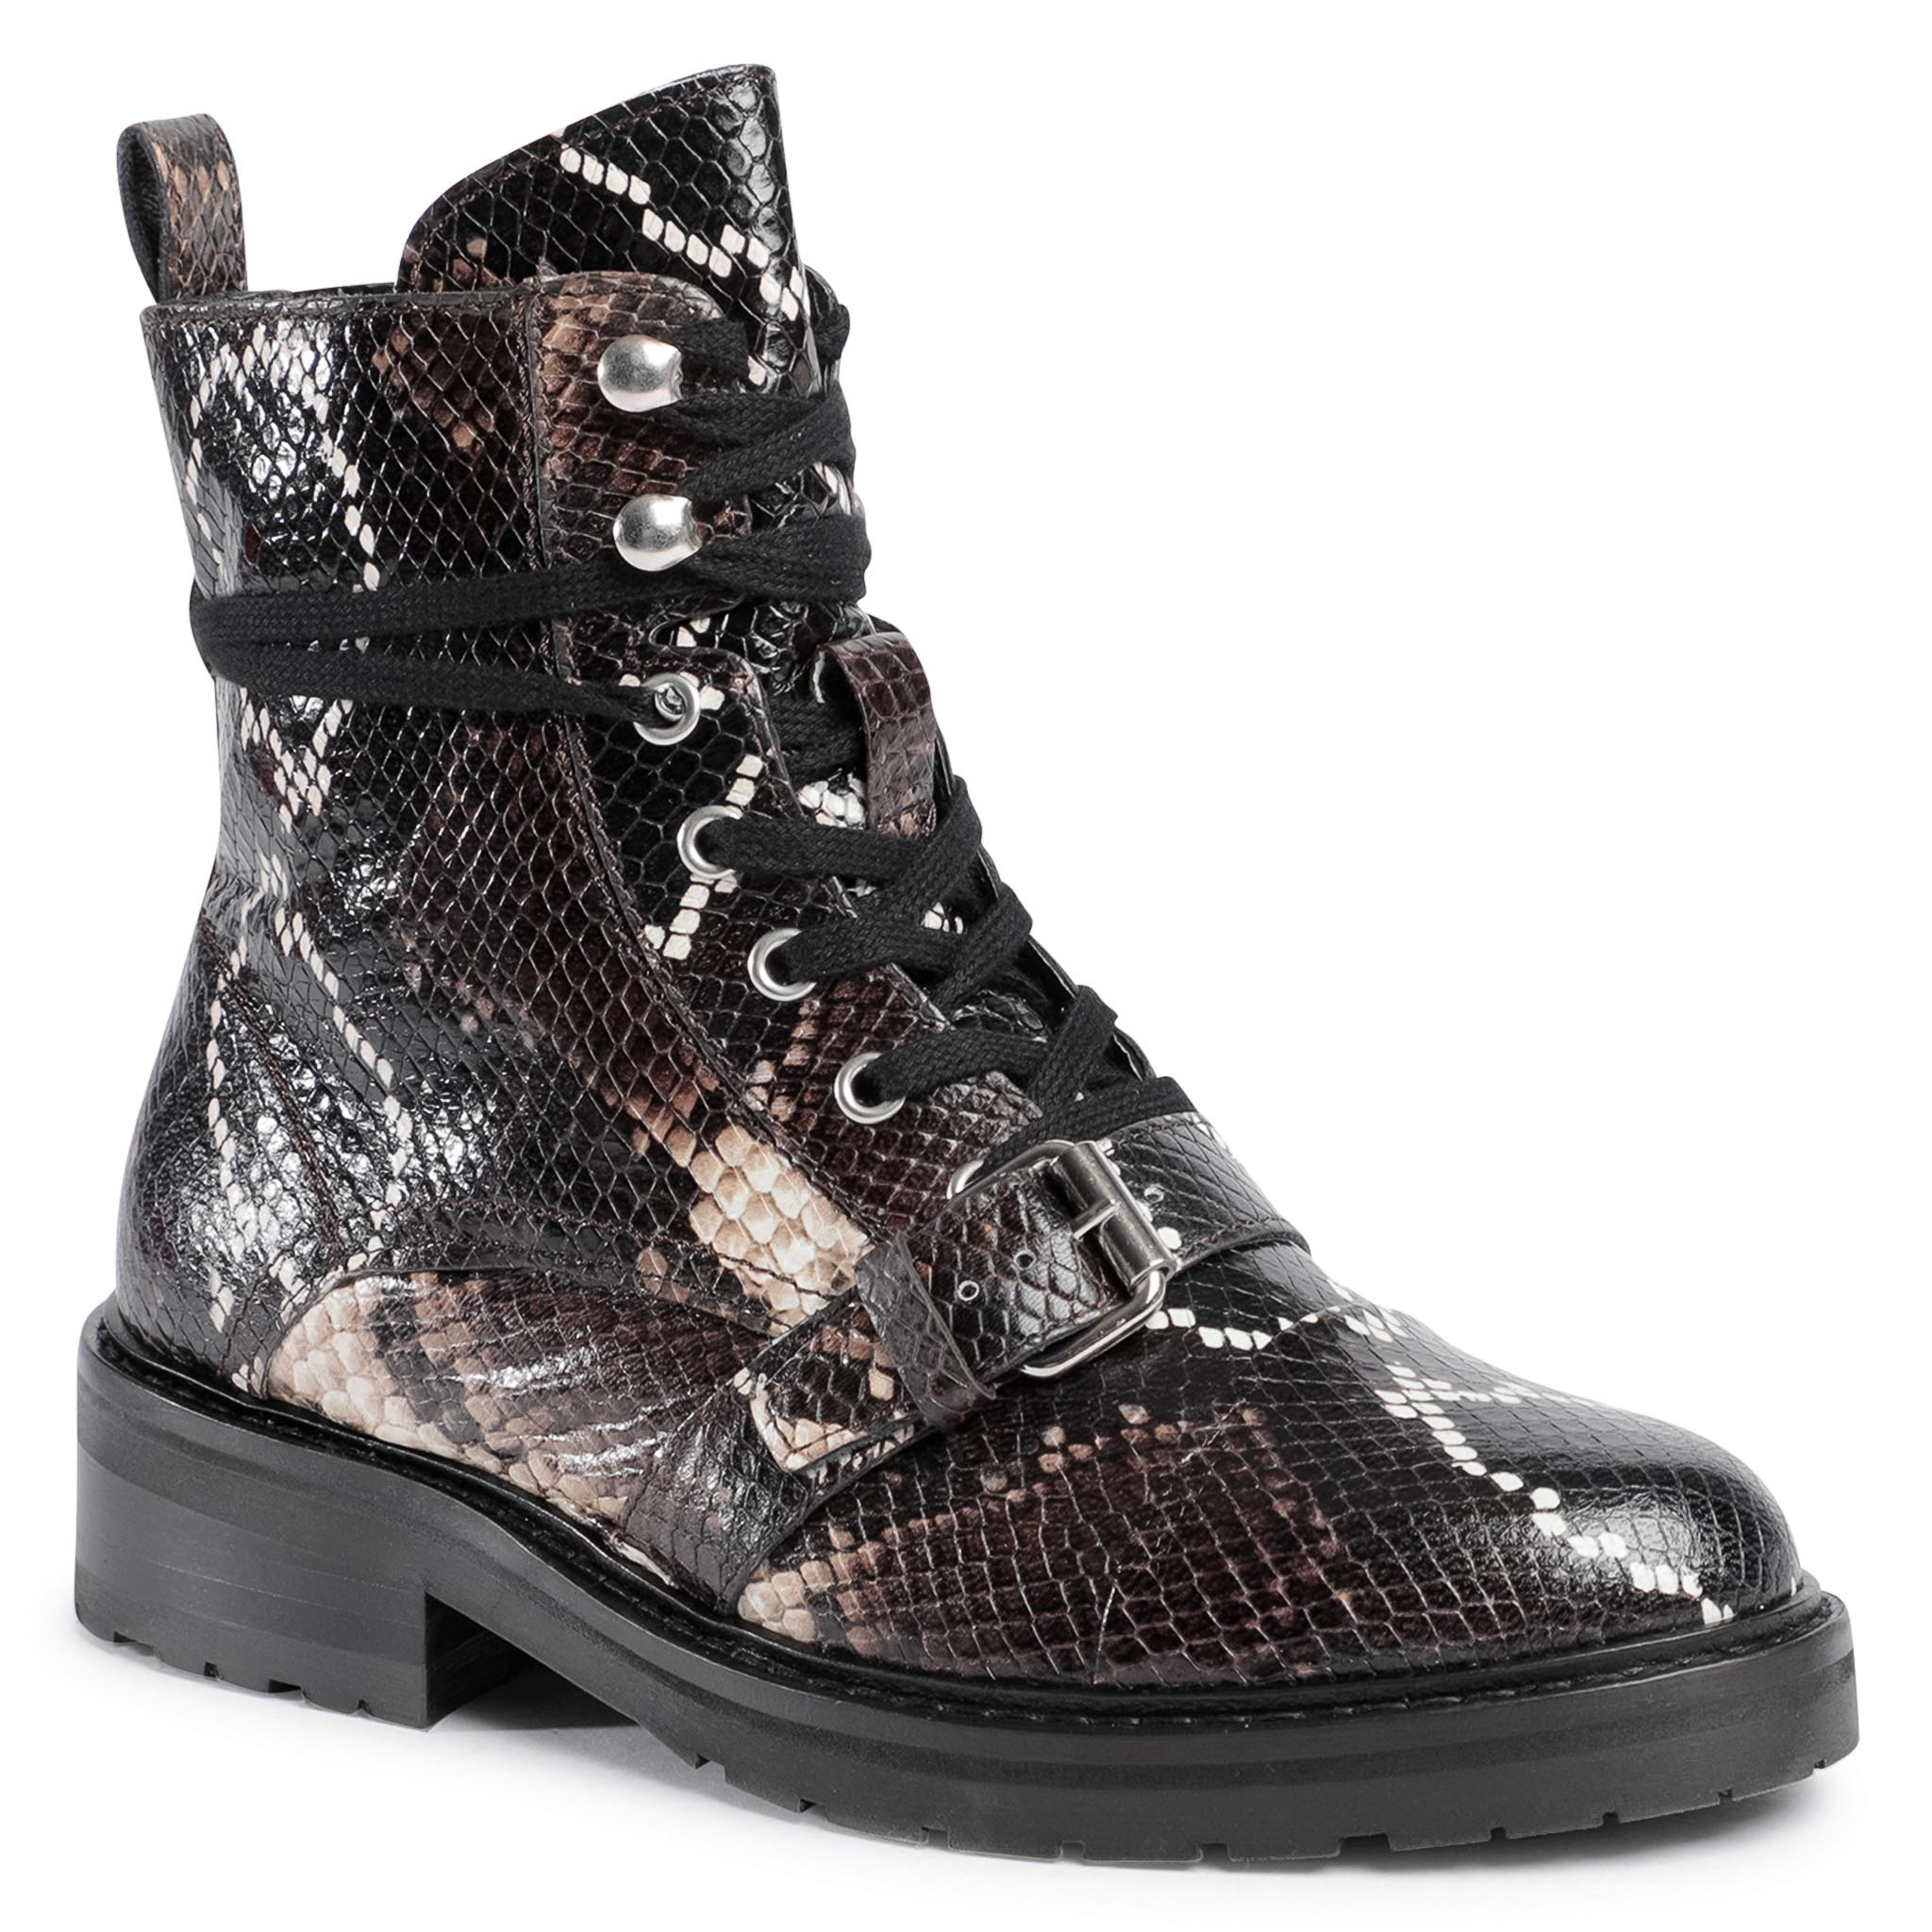 Image of Trapperschuhe ALLSAINTS - Donita B4ZW0238 Multi Snake